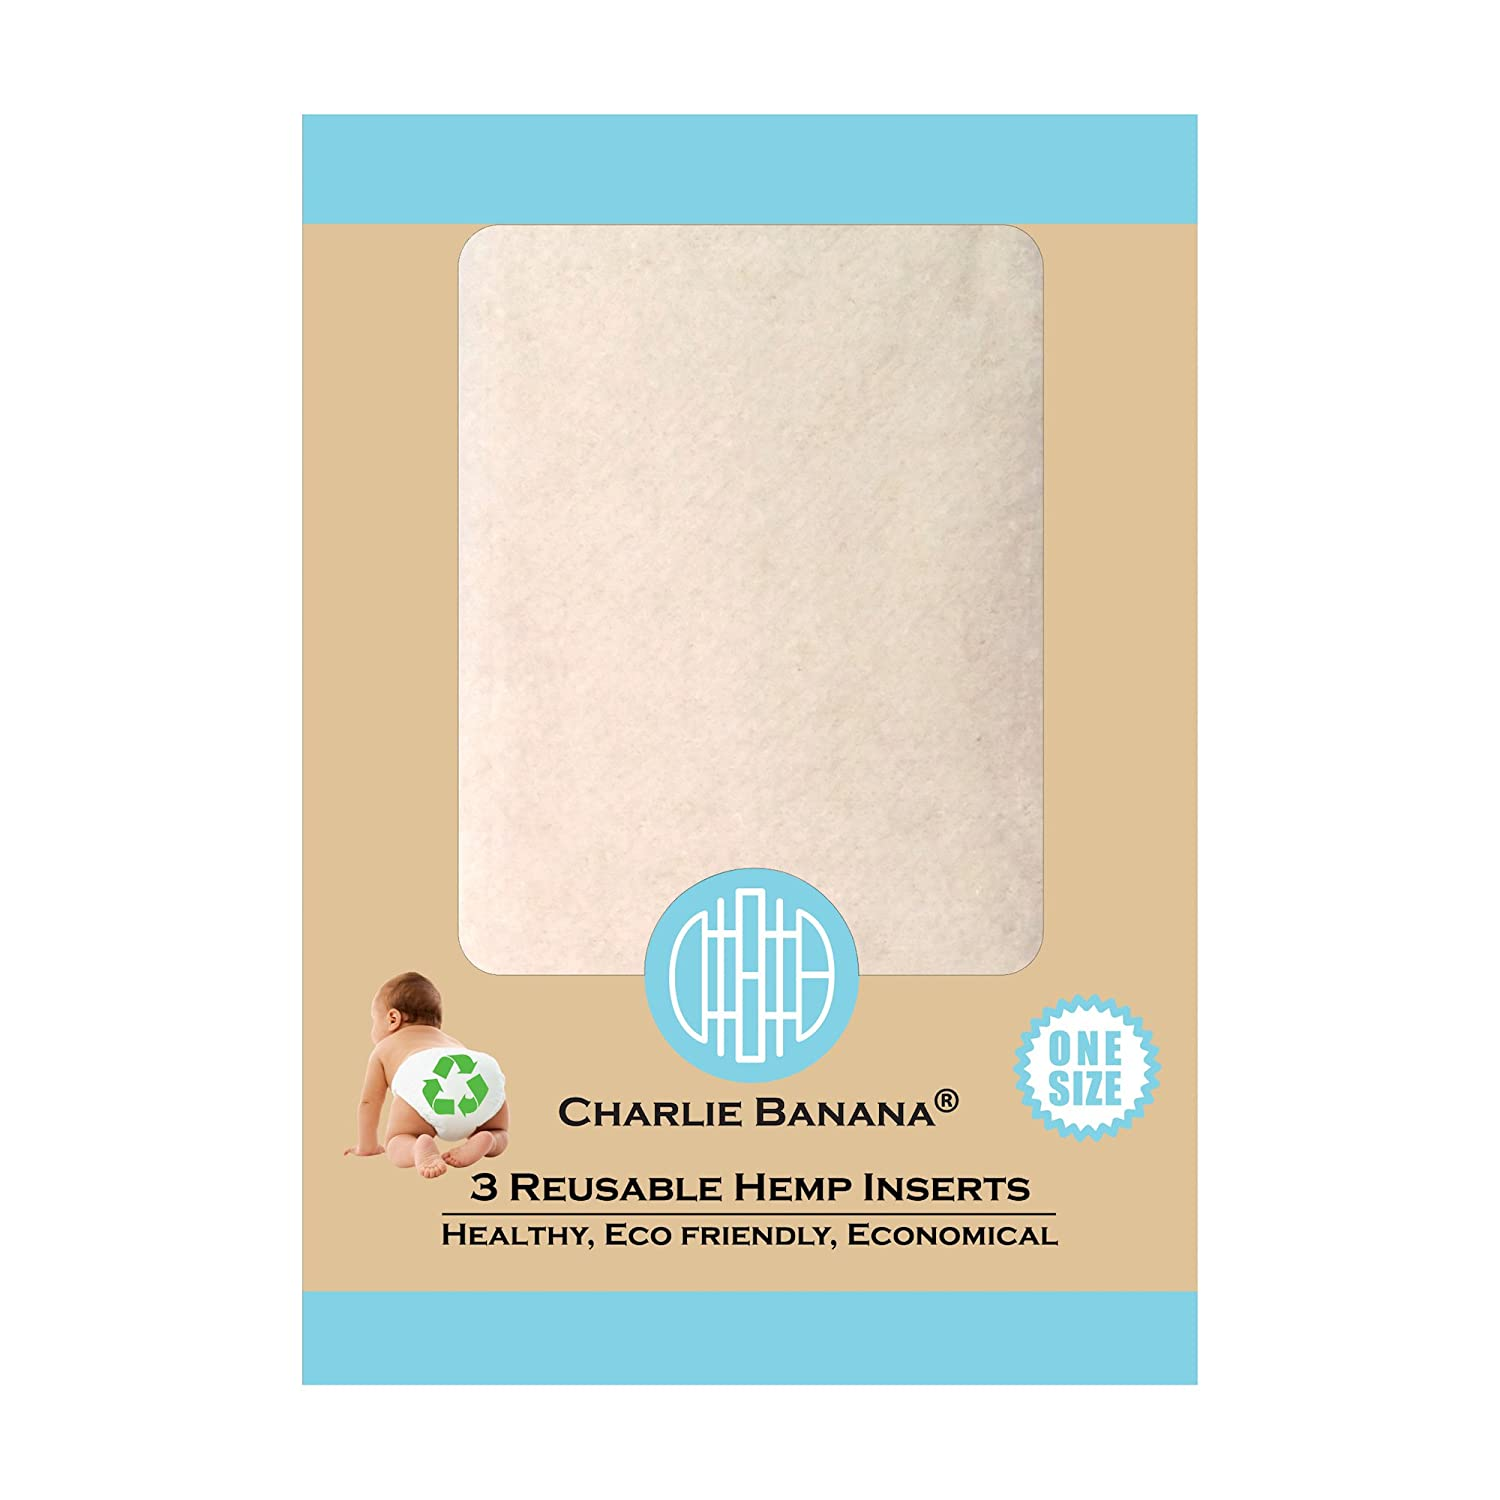 Charlie Banana Reusable Hemp Inserts, Size 1, Medium/Large, 3-Piece Winc Design Limited 889483